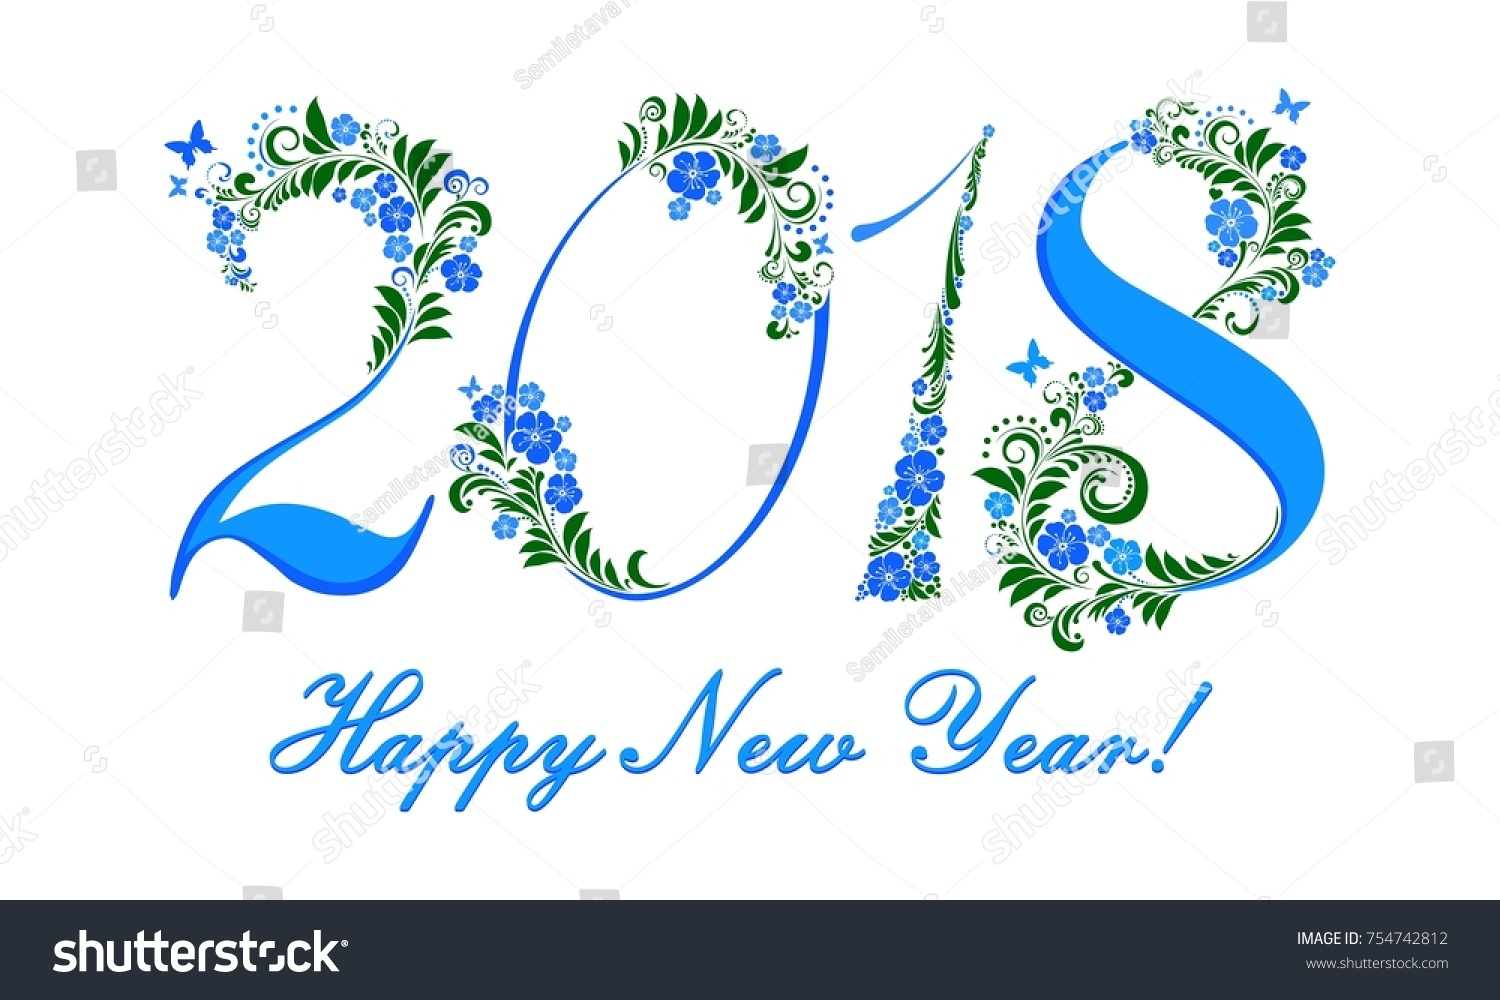 2018 happy new year greeting card celebration white background with blue flower and place for